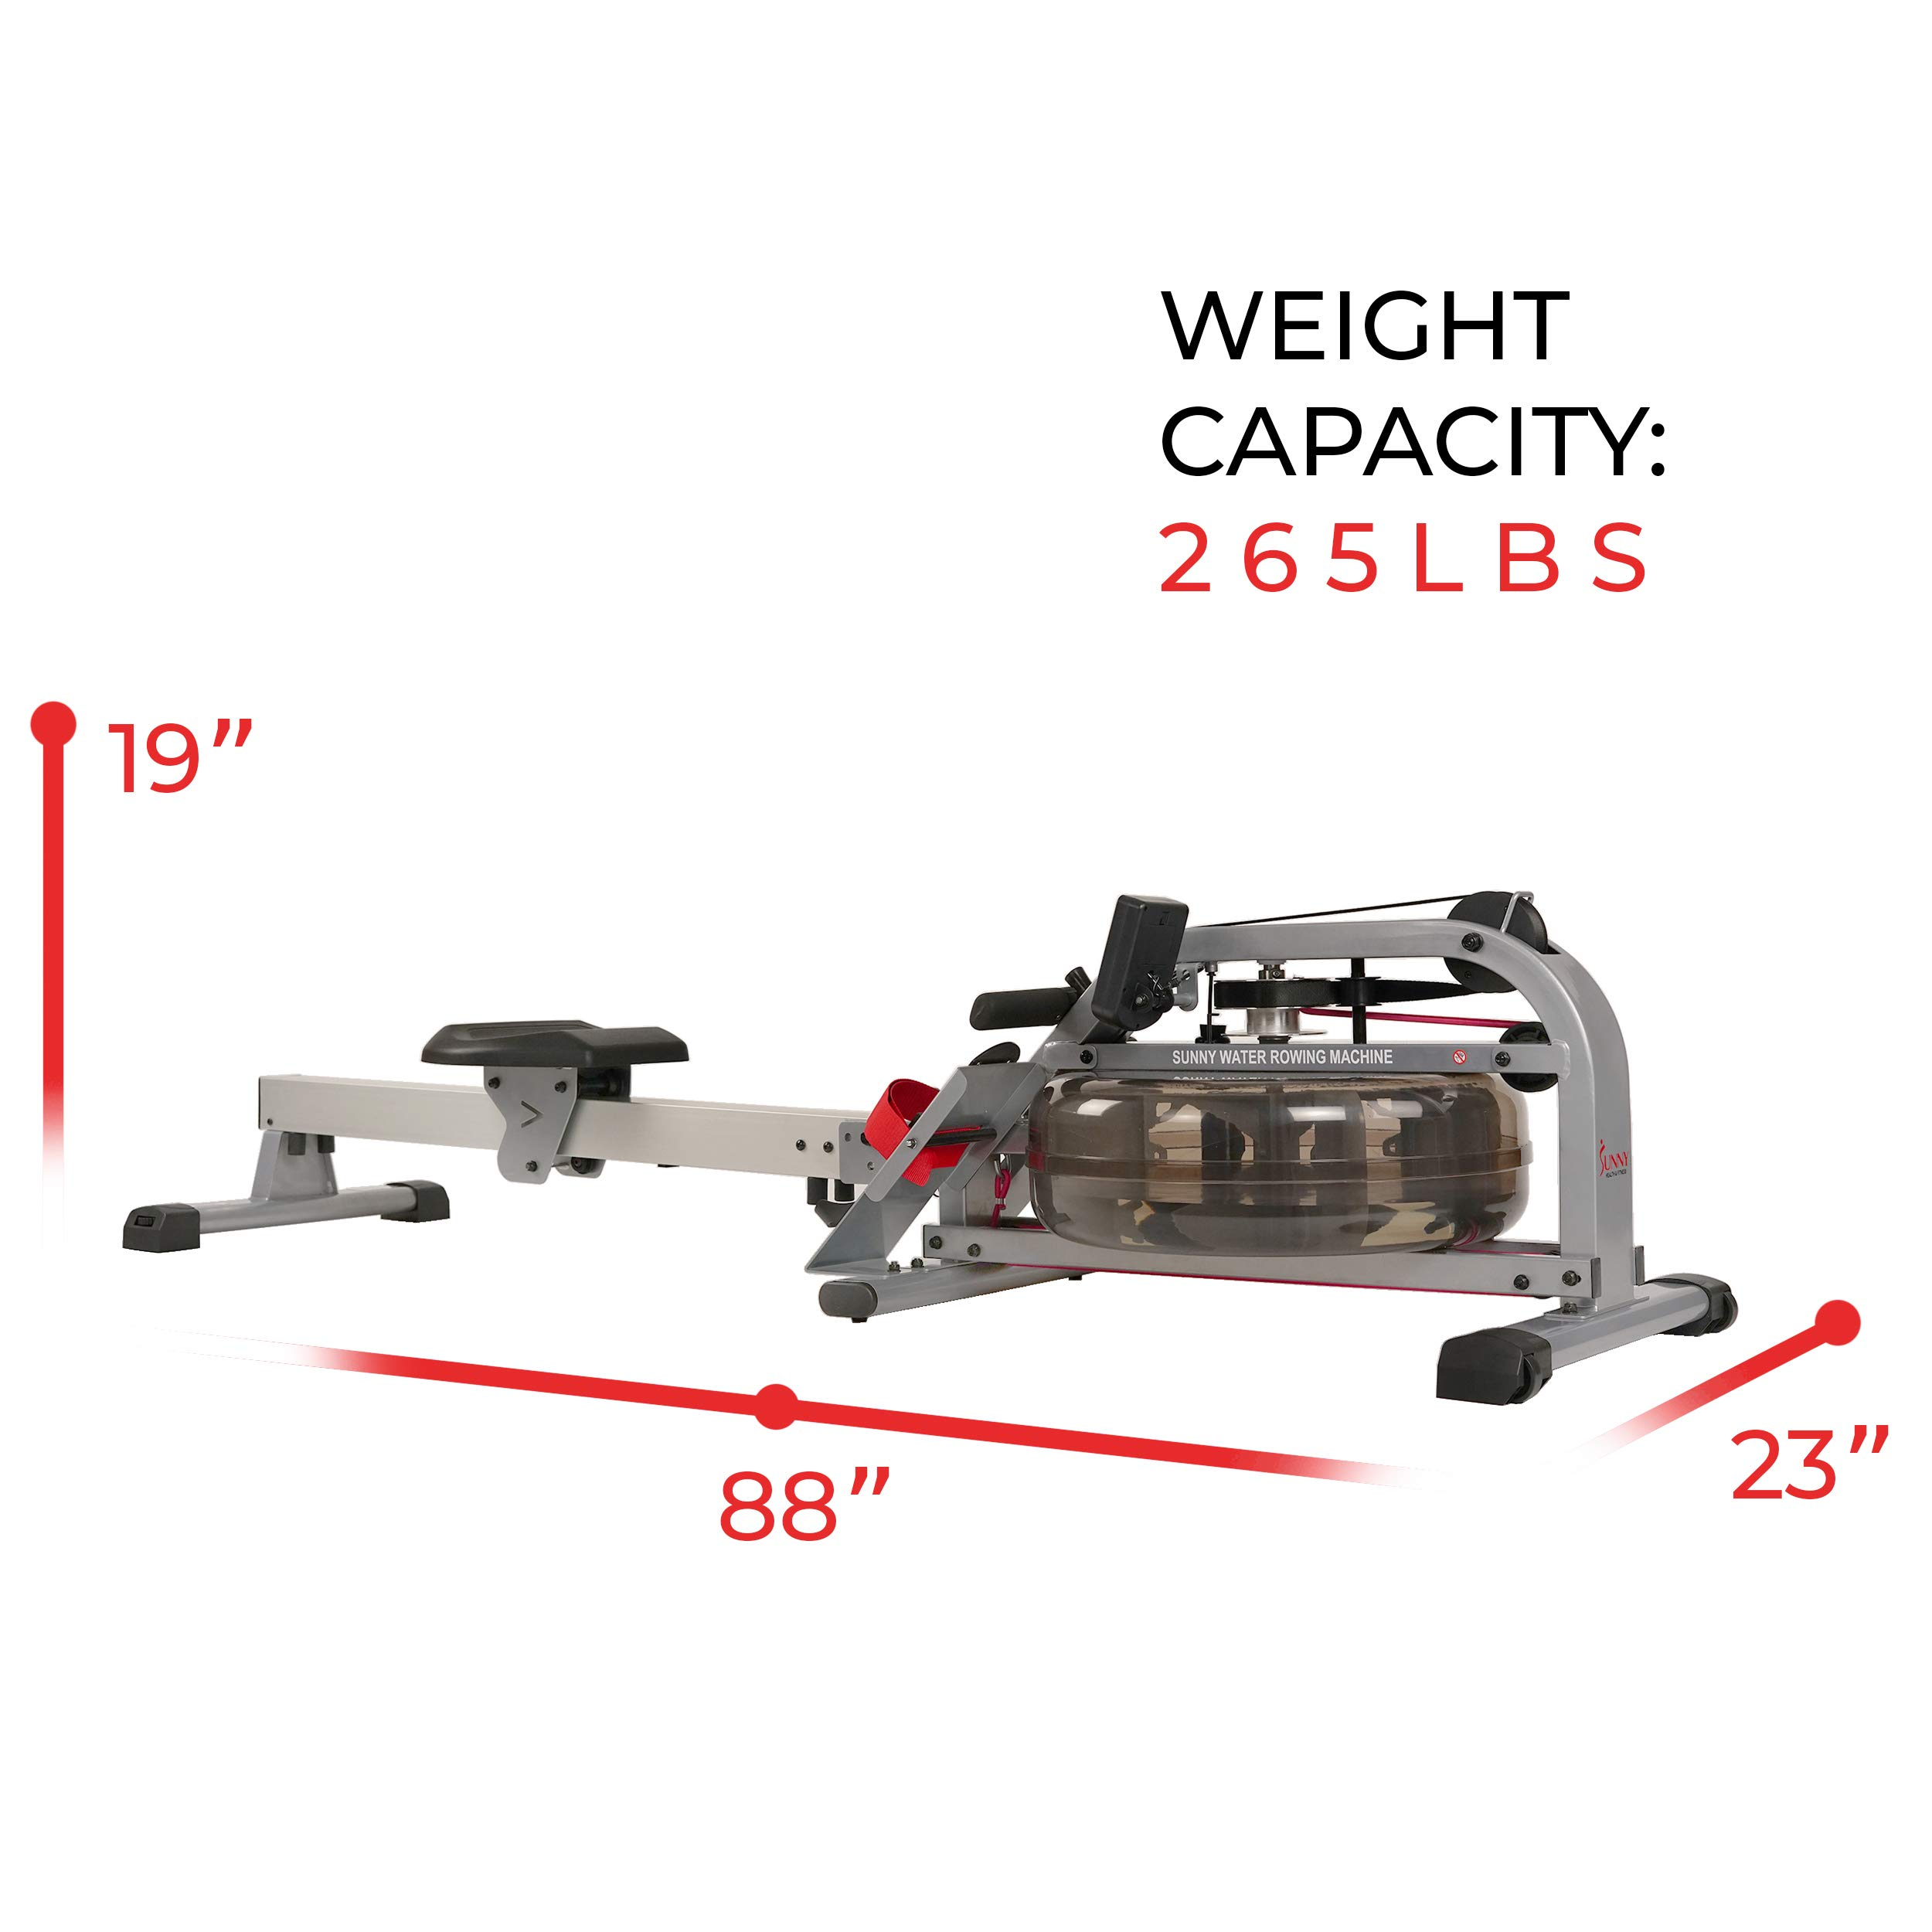 Sunny Health & Fitness Water Rowing Machine Rower w/LCD Monitor - SF-RW5866 by Sunny Health & Fitness (Image #19)